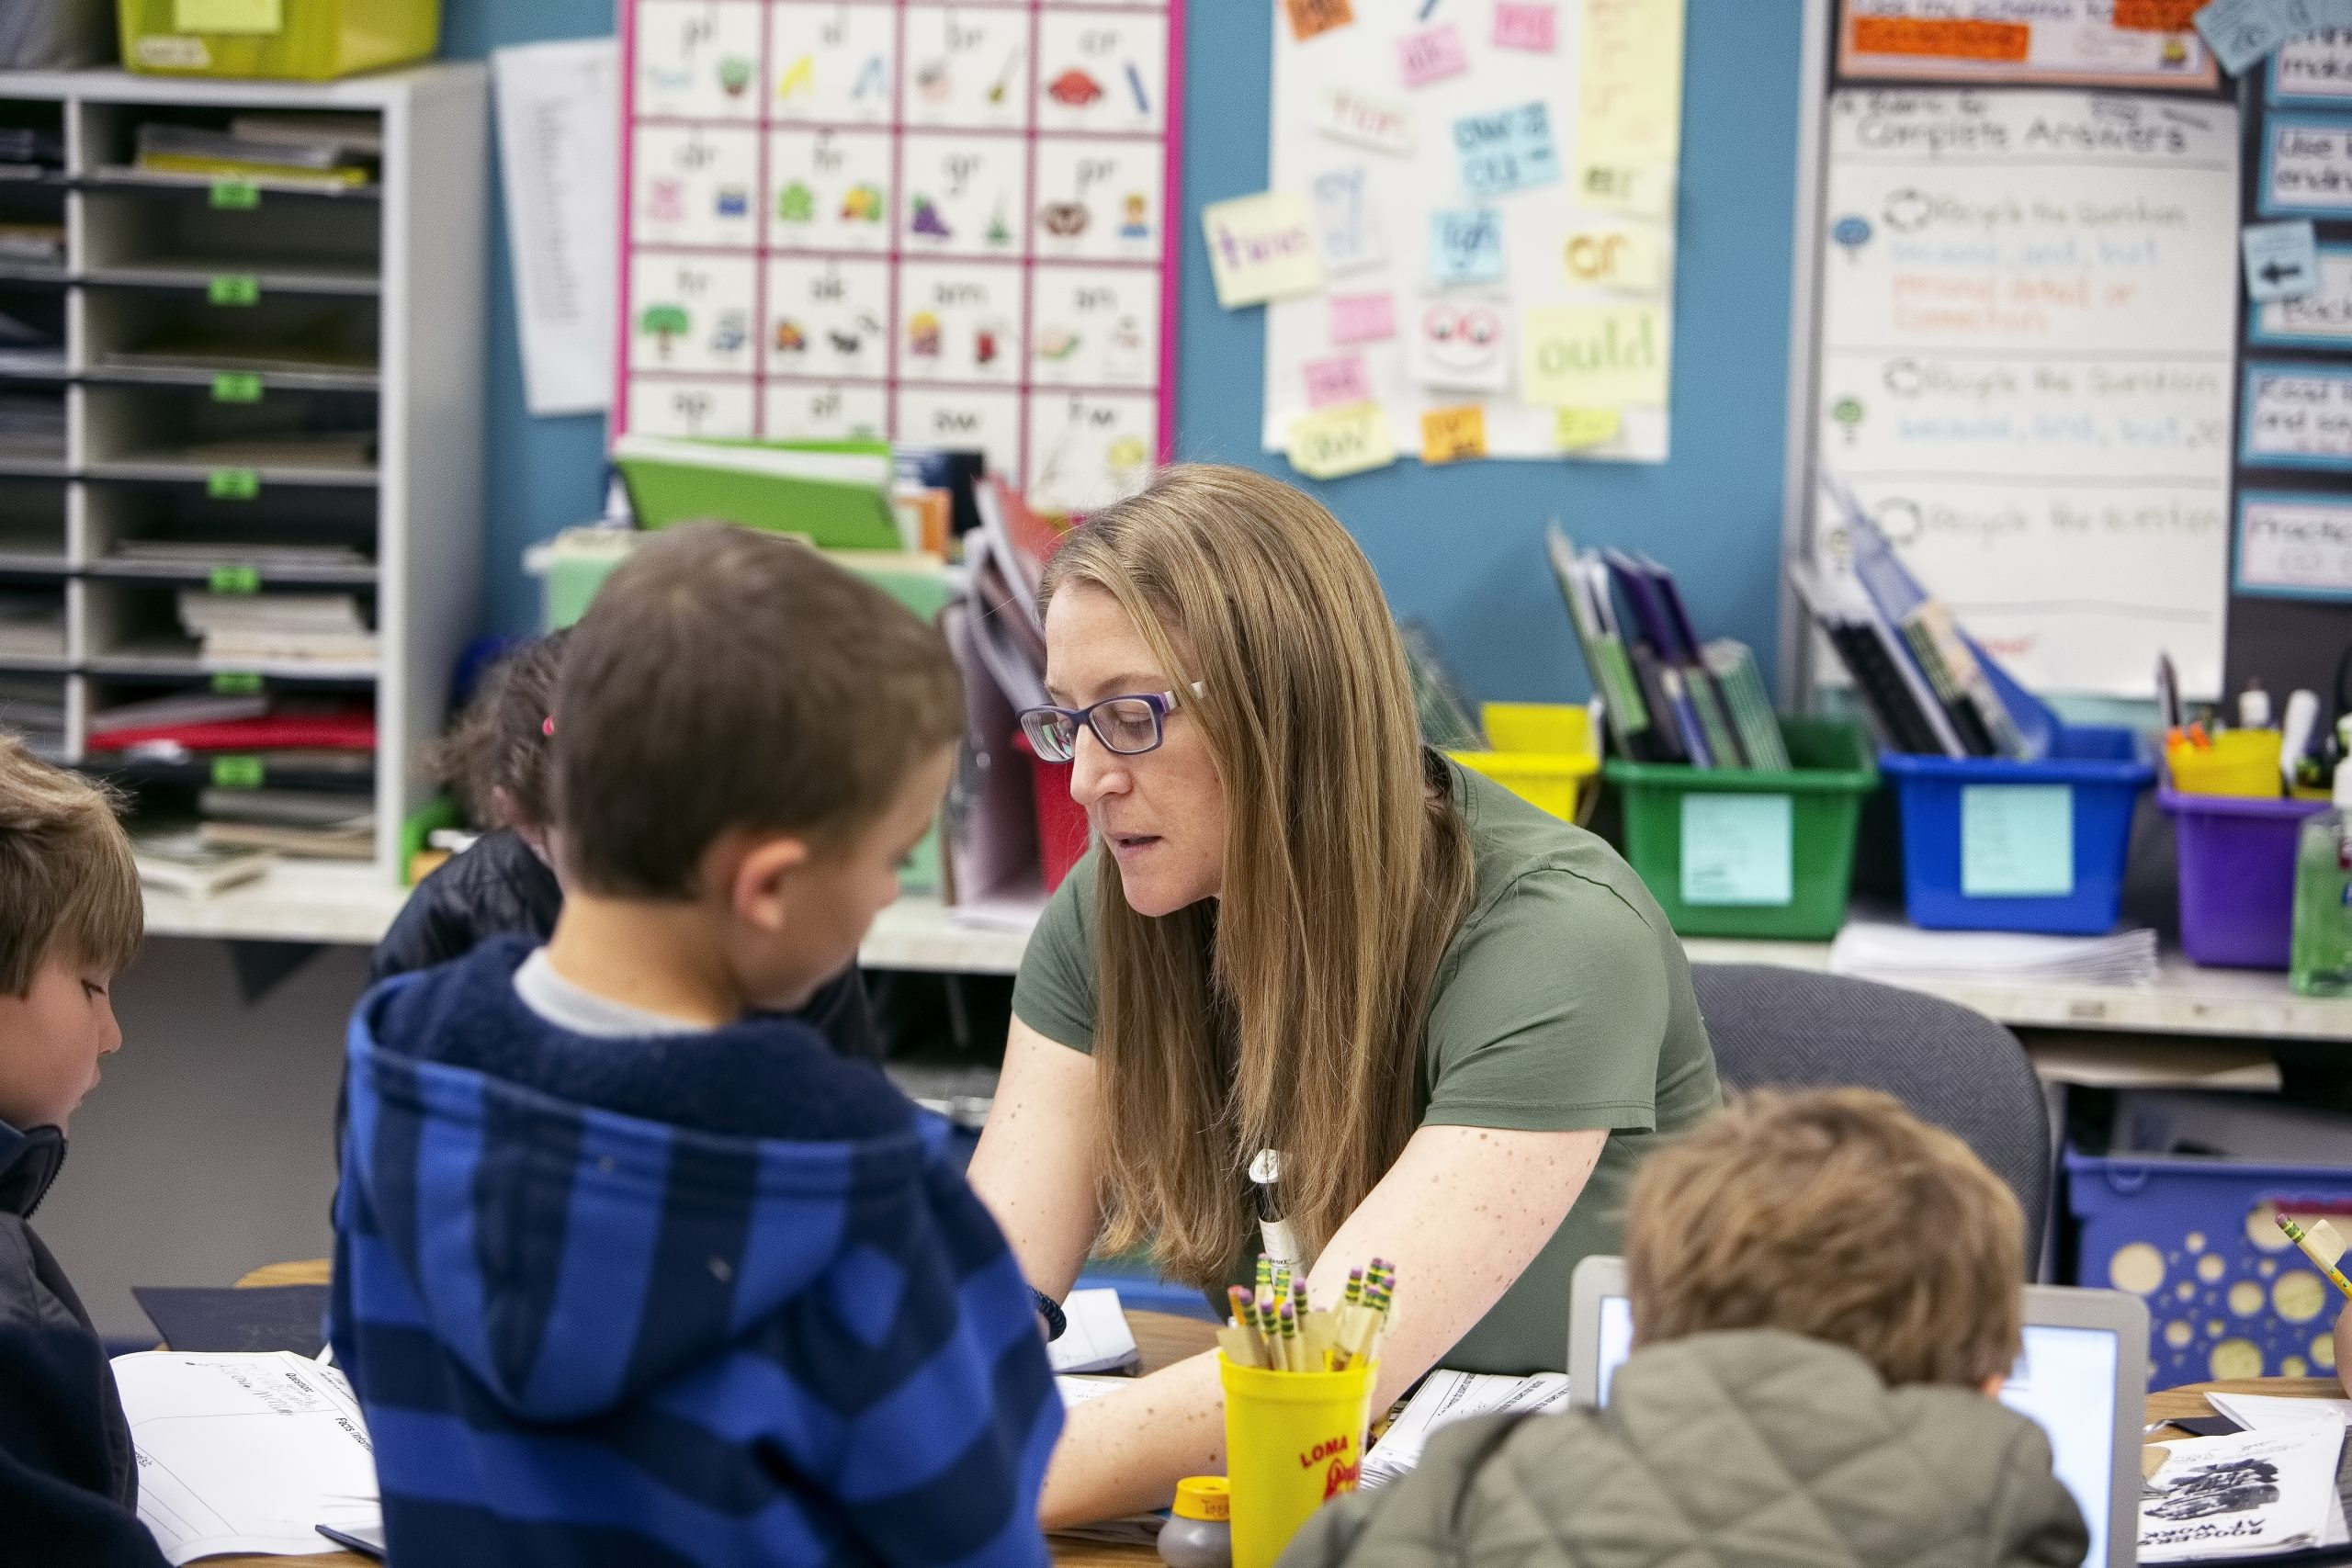 Female teacher working with small group of students